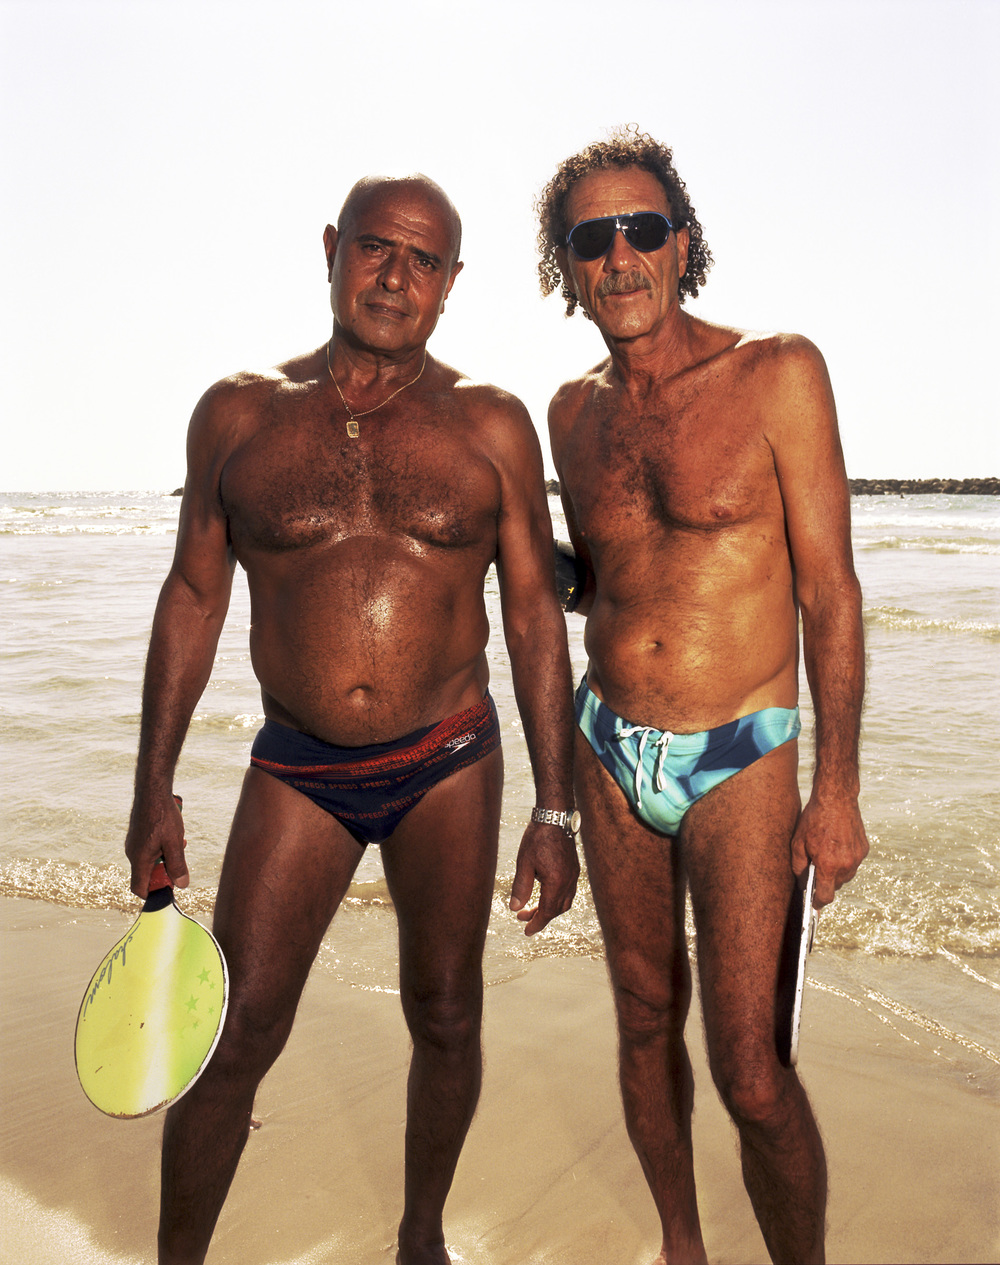 Oded and Michael, 2011   Oded and Michael play matkot—the Israeli form of beach tennis—almost daily on the beach.